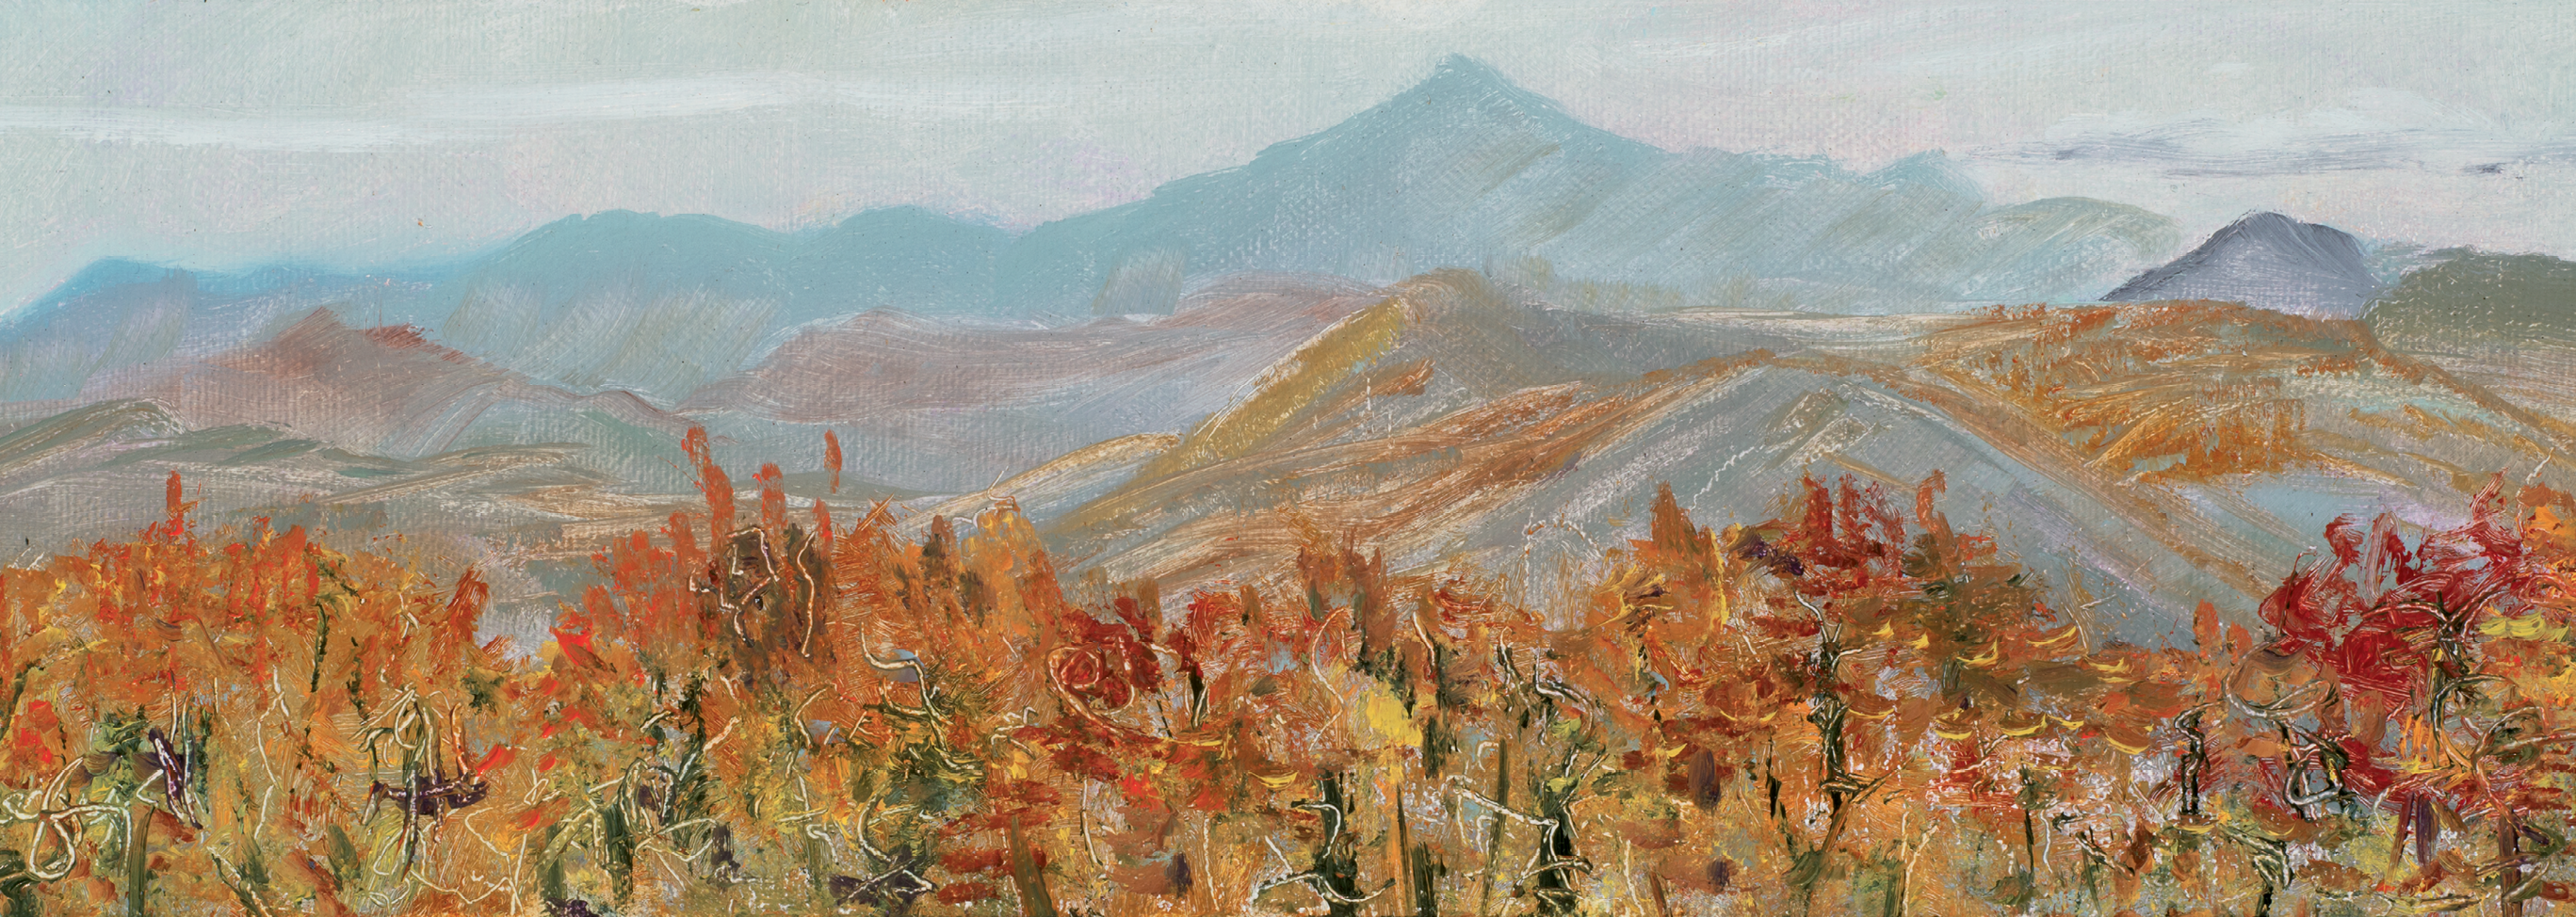 Blue Ridge, oil on panel, 4 x 12 inches, 2016; image courtesy of Mary Edna Fraser